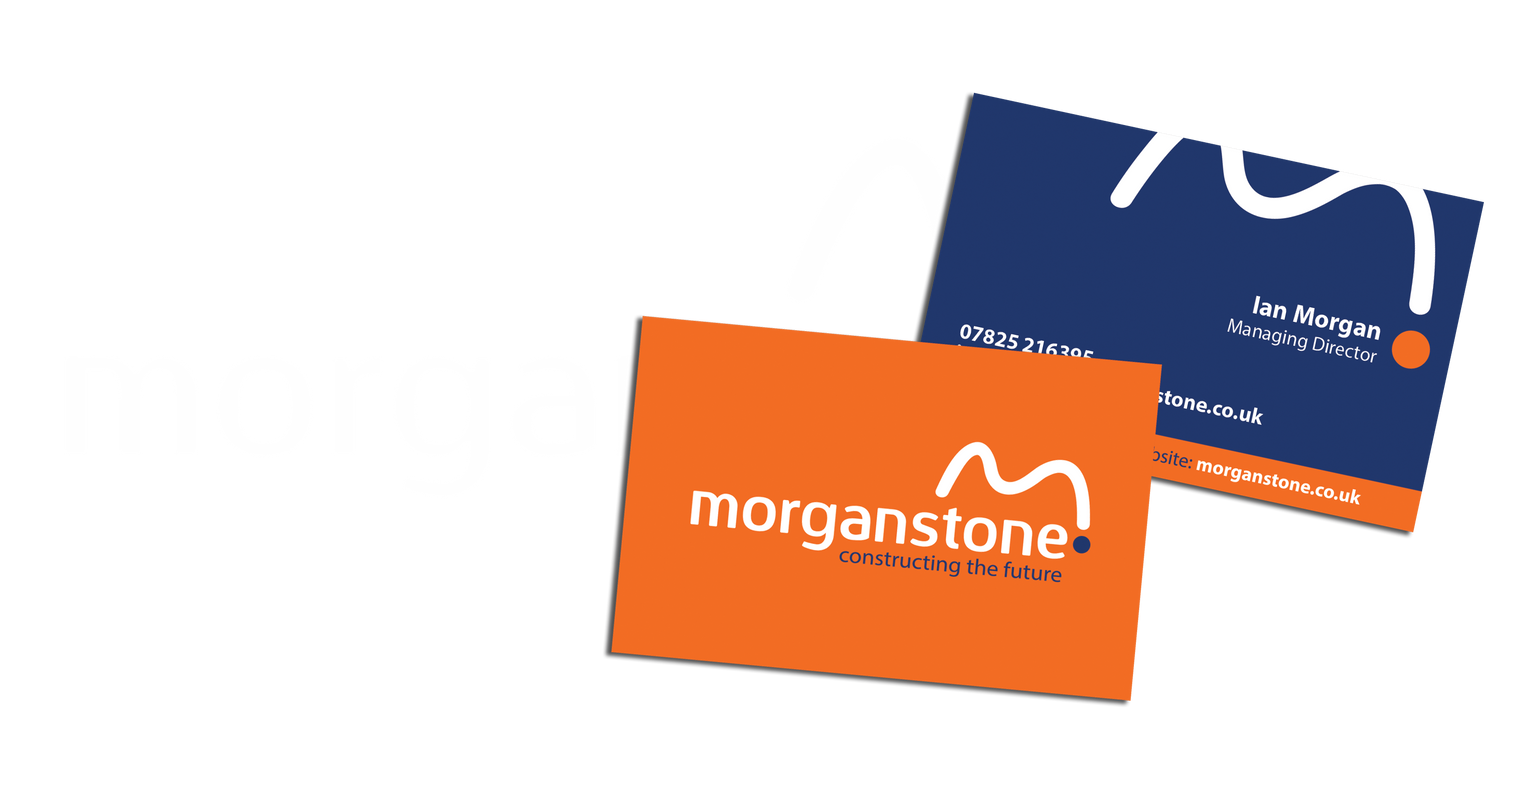 MORGANSTONE BUSINESS CARDS.png